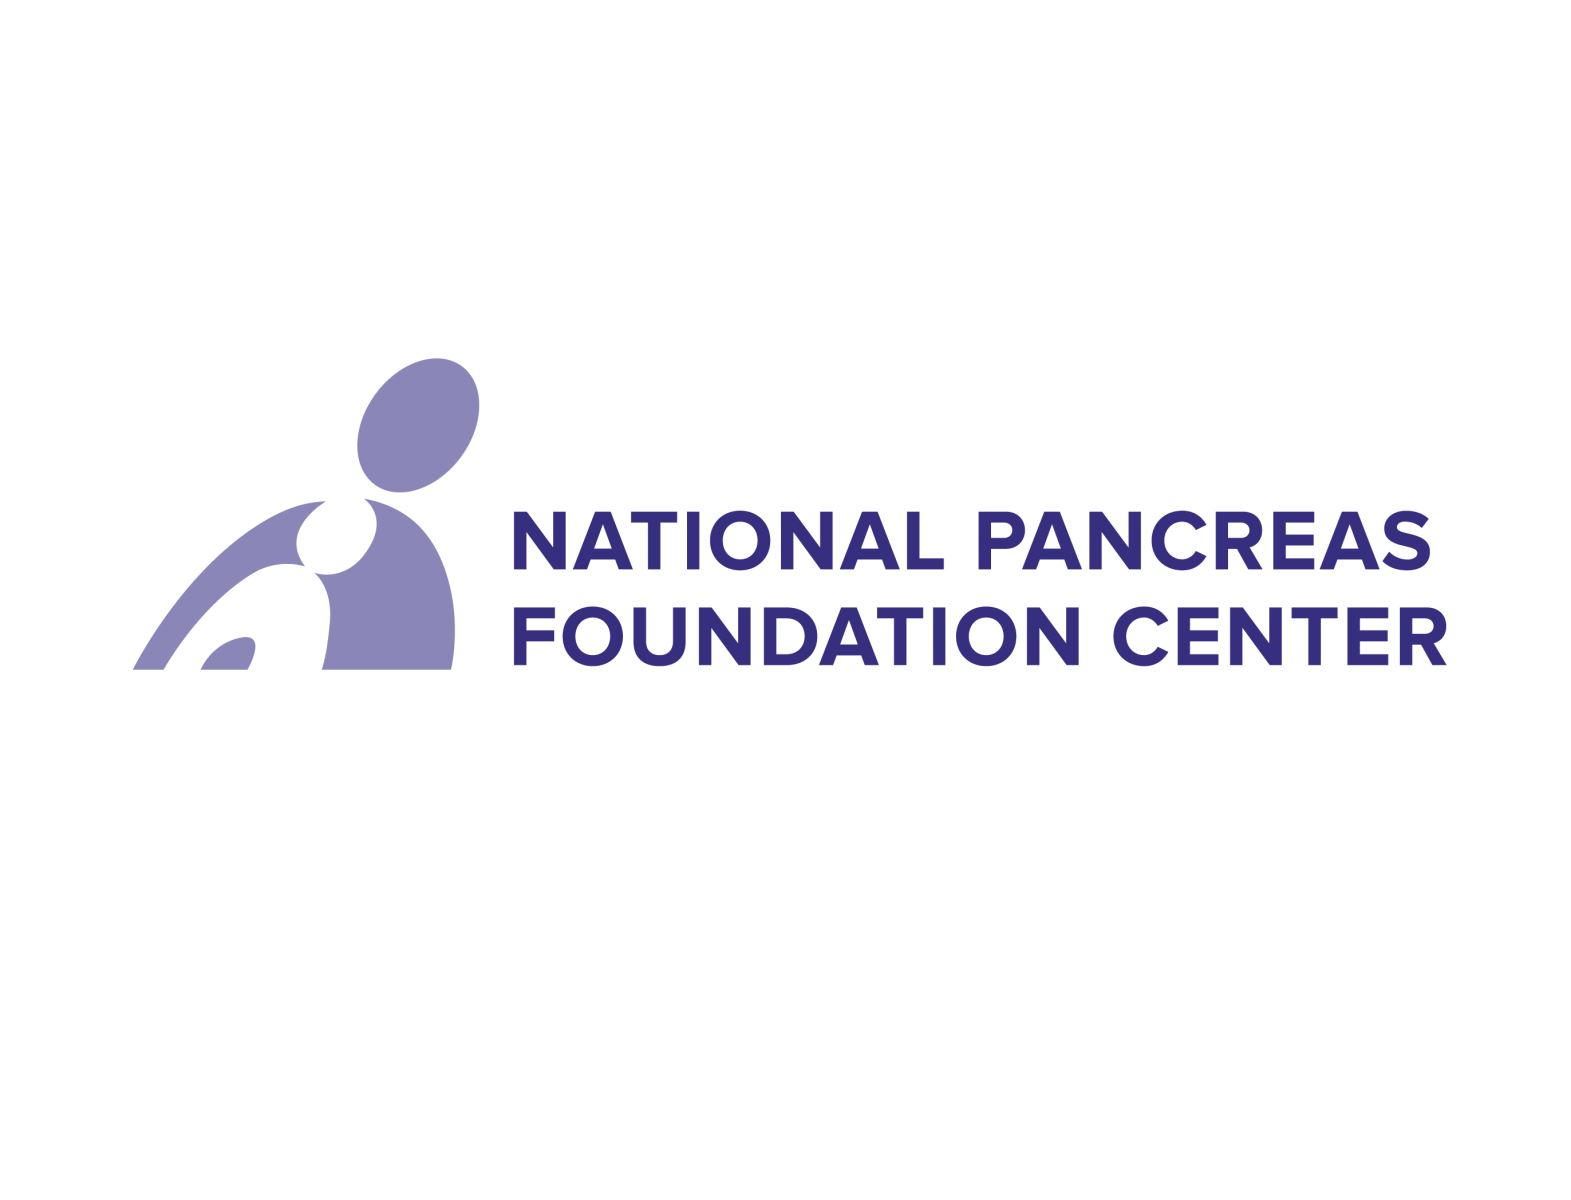 National Pancreas Foundation Center